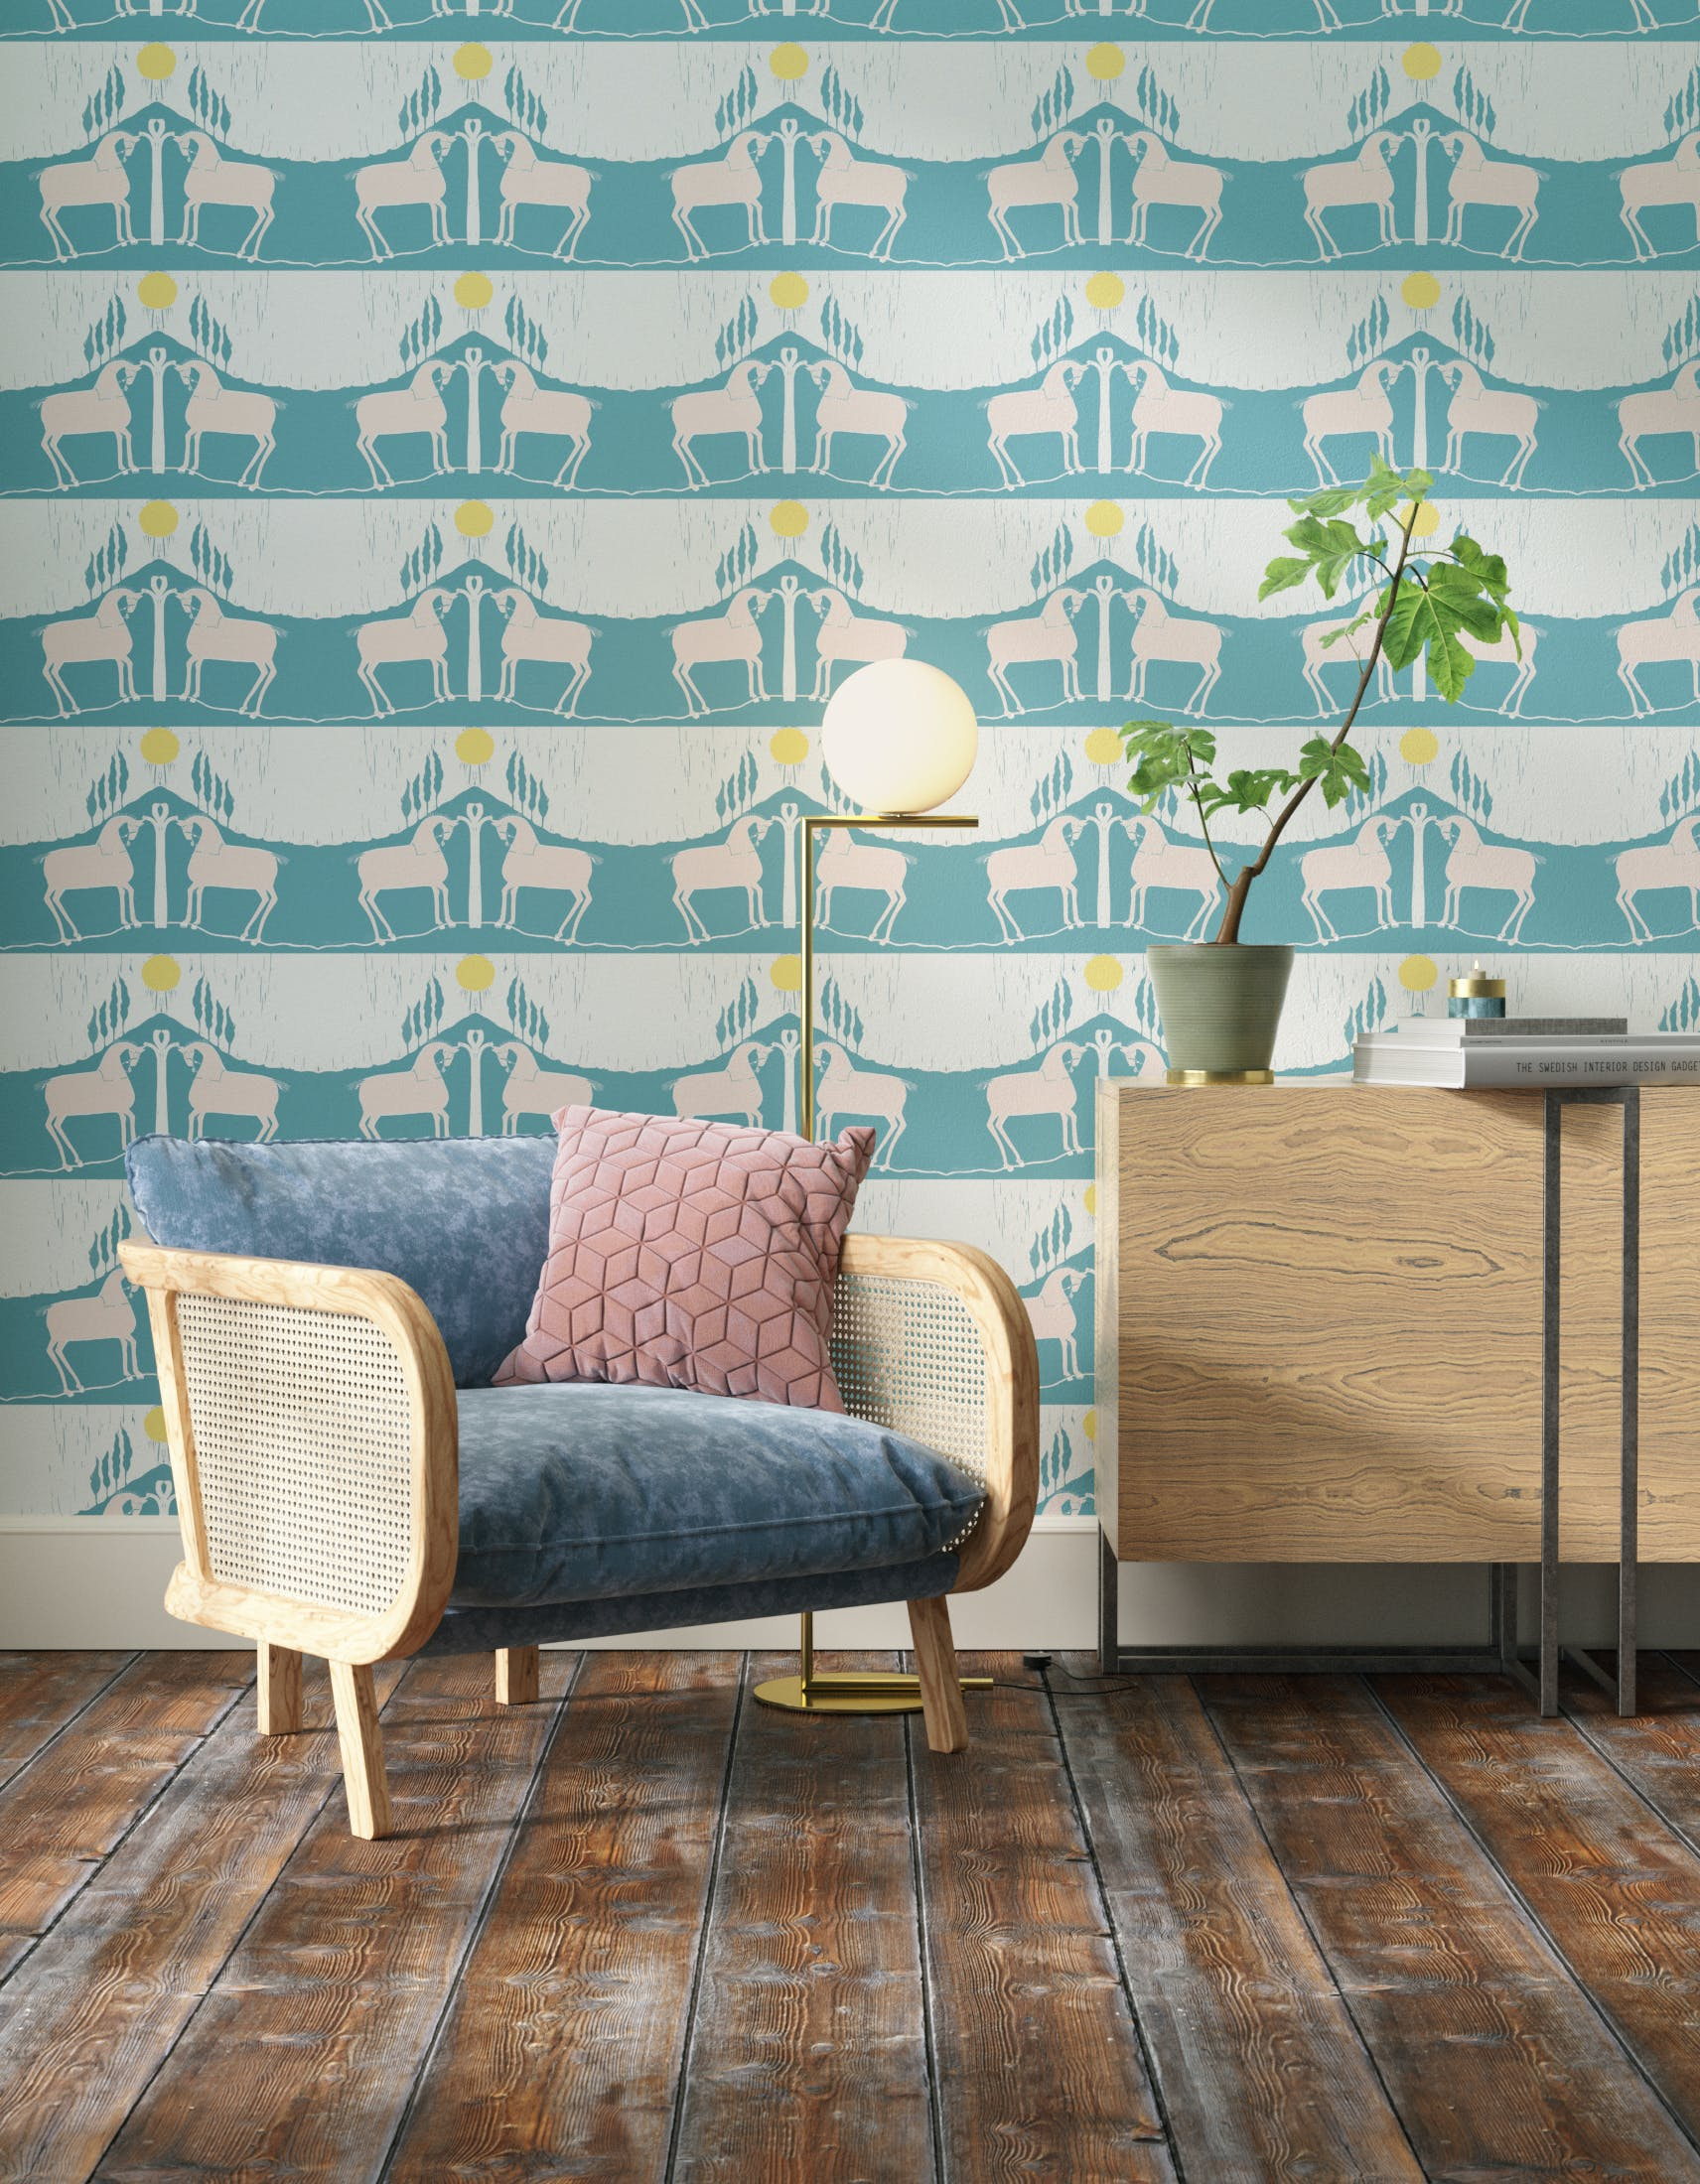 Living room decorated with Lick x Annika Reed Western 01 teal and yellow animal wallpaper